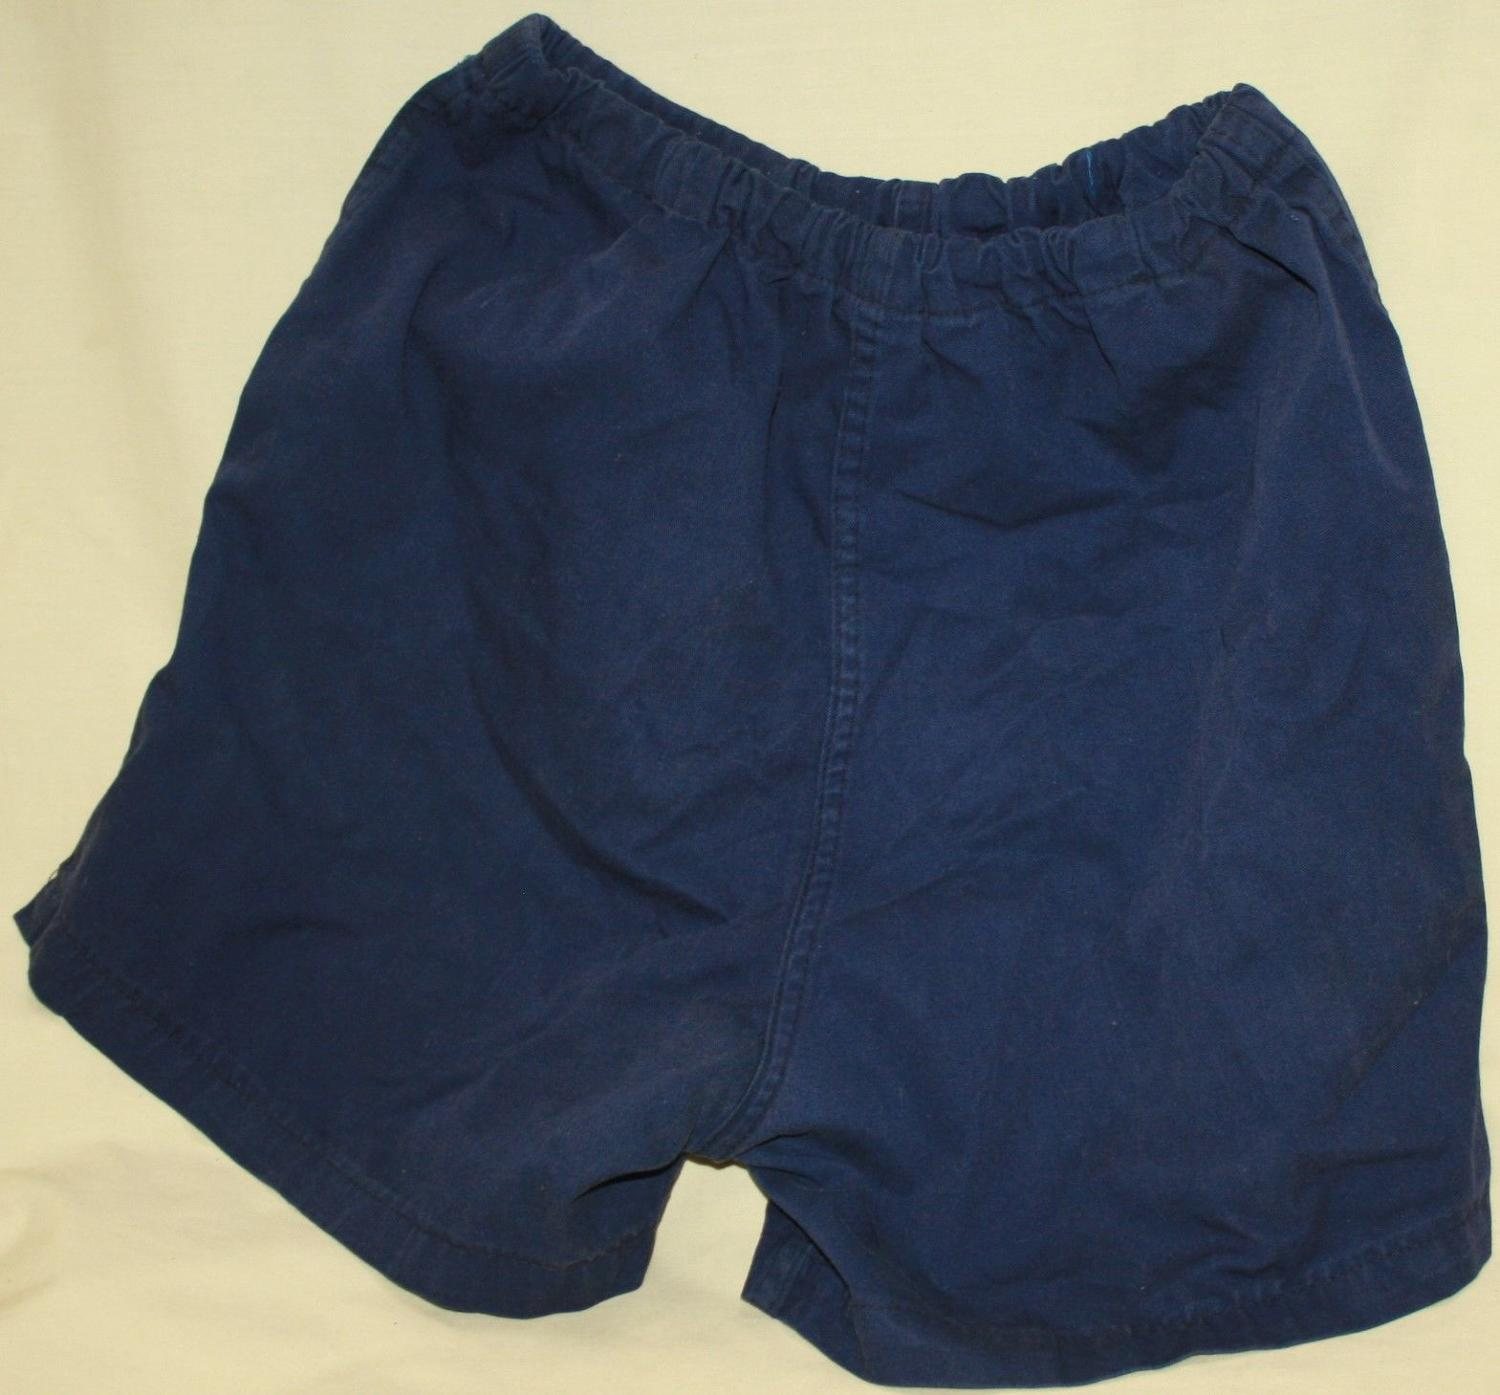 A PAIR OF PT SHORTS WITH ELASTICATED WAIST 34 WAIST